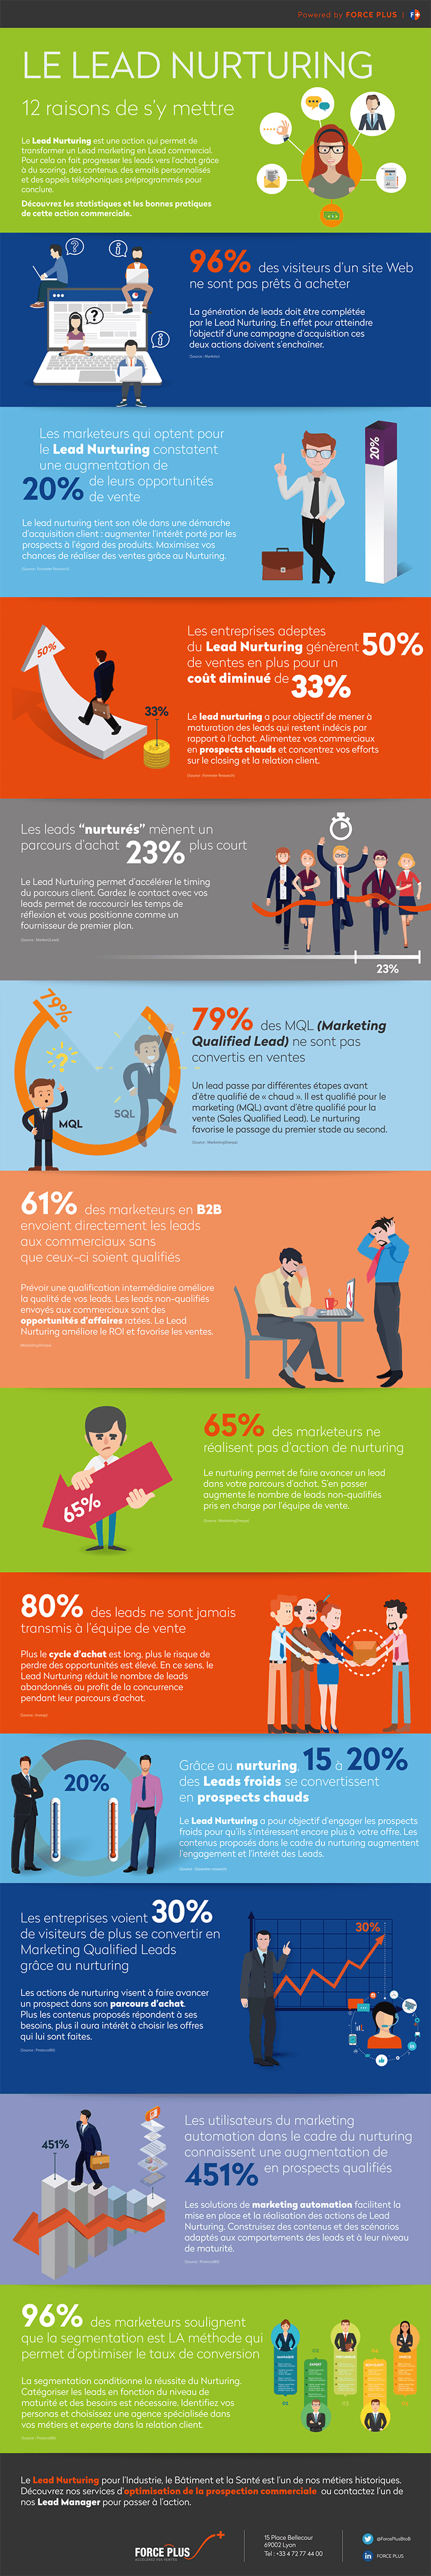 lead nurturing efficace infographie | FORCE PLUS